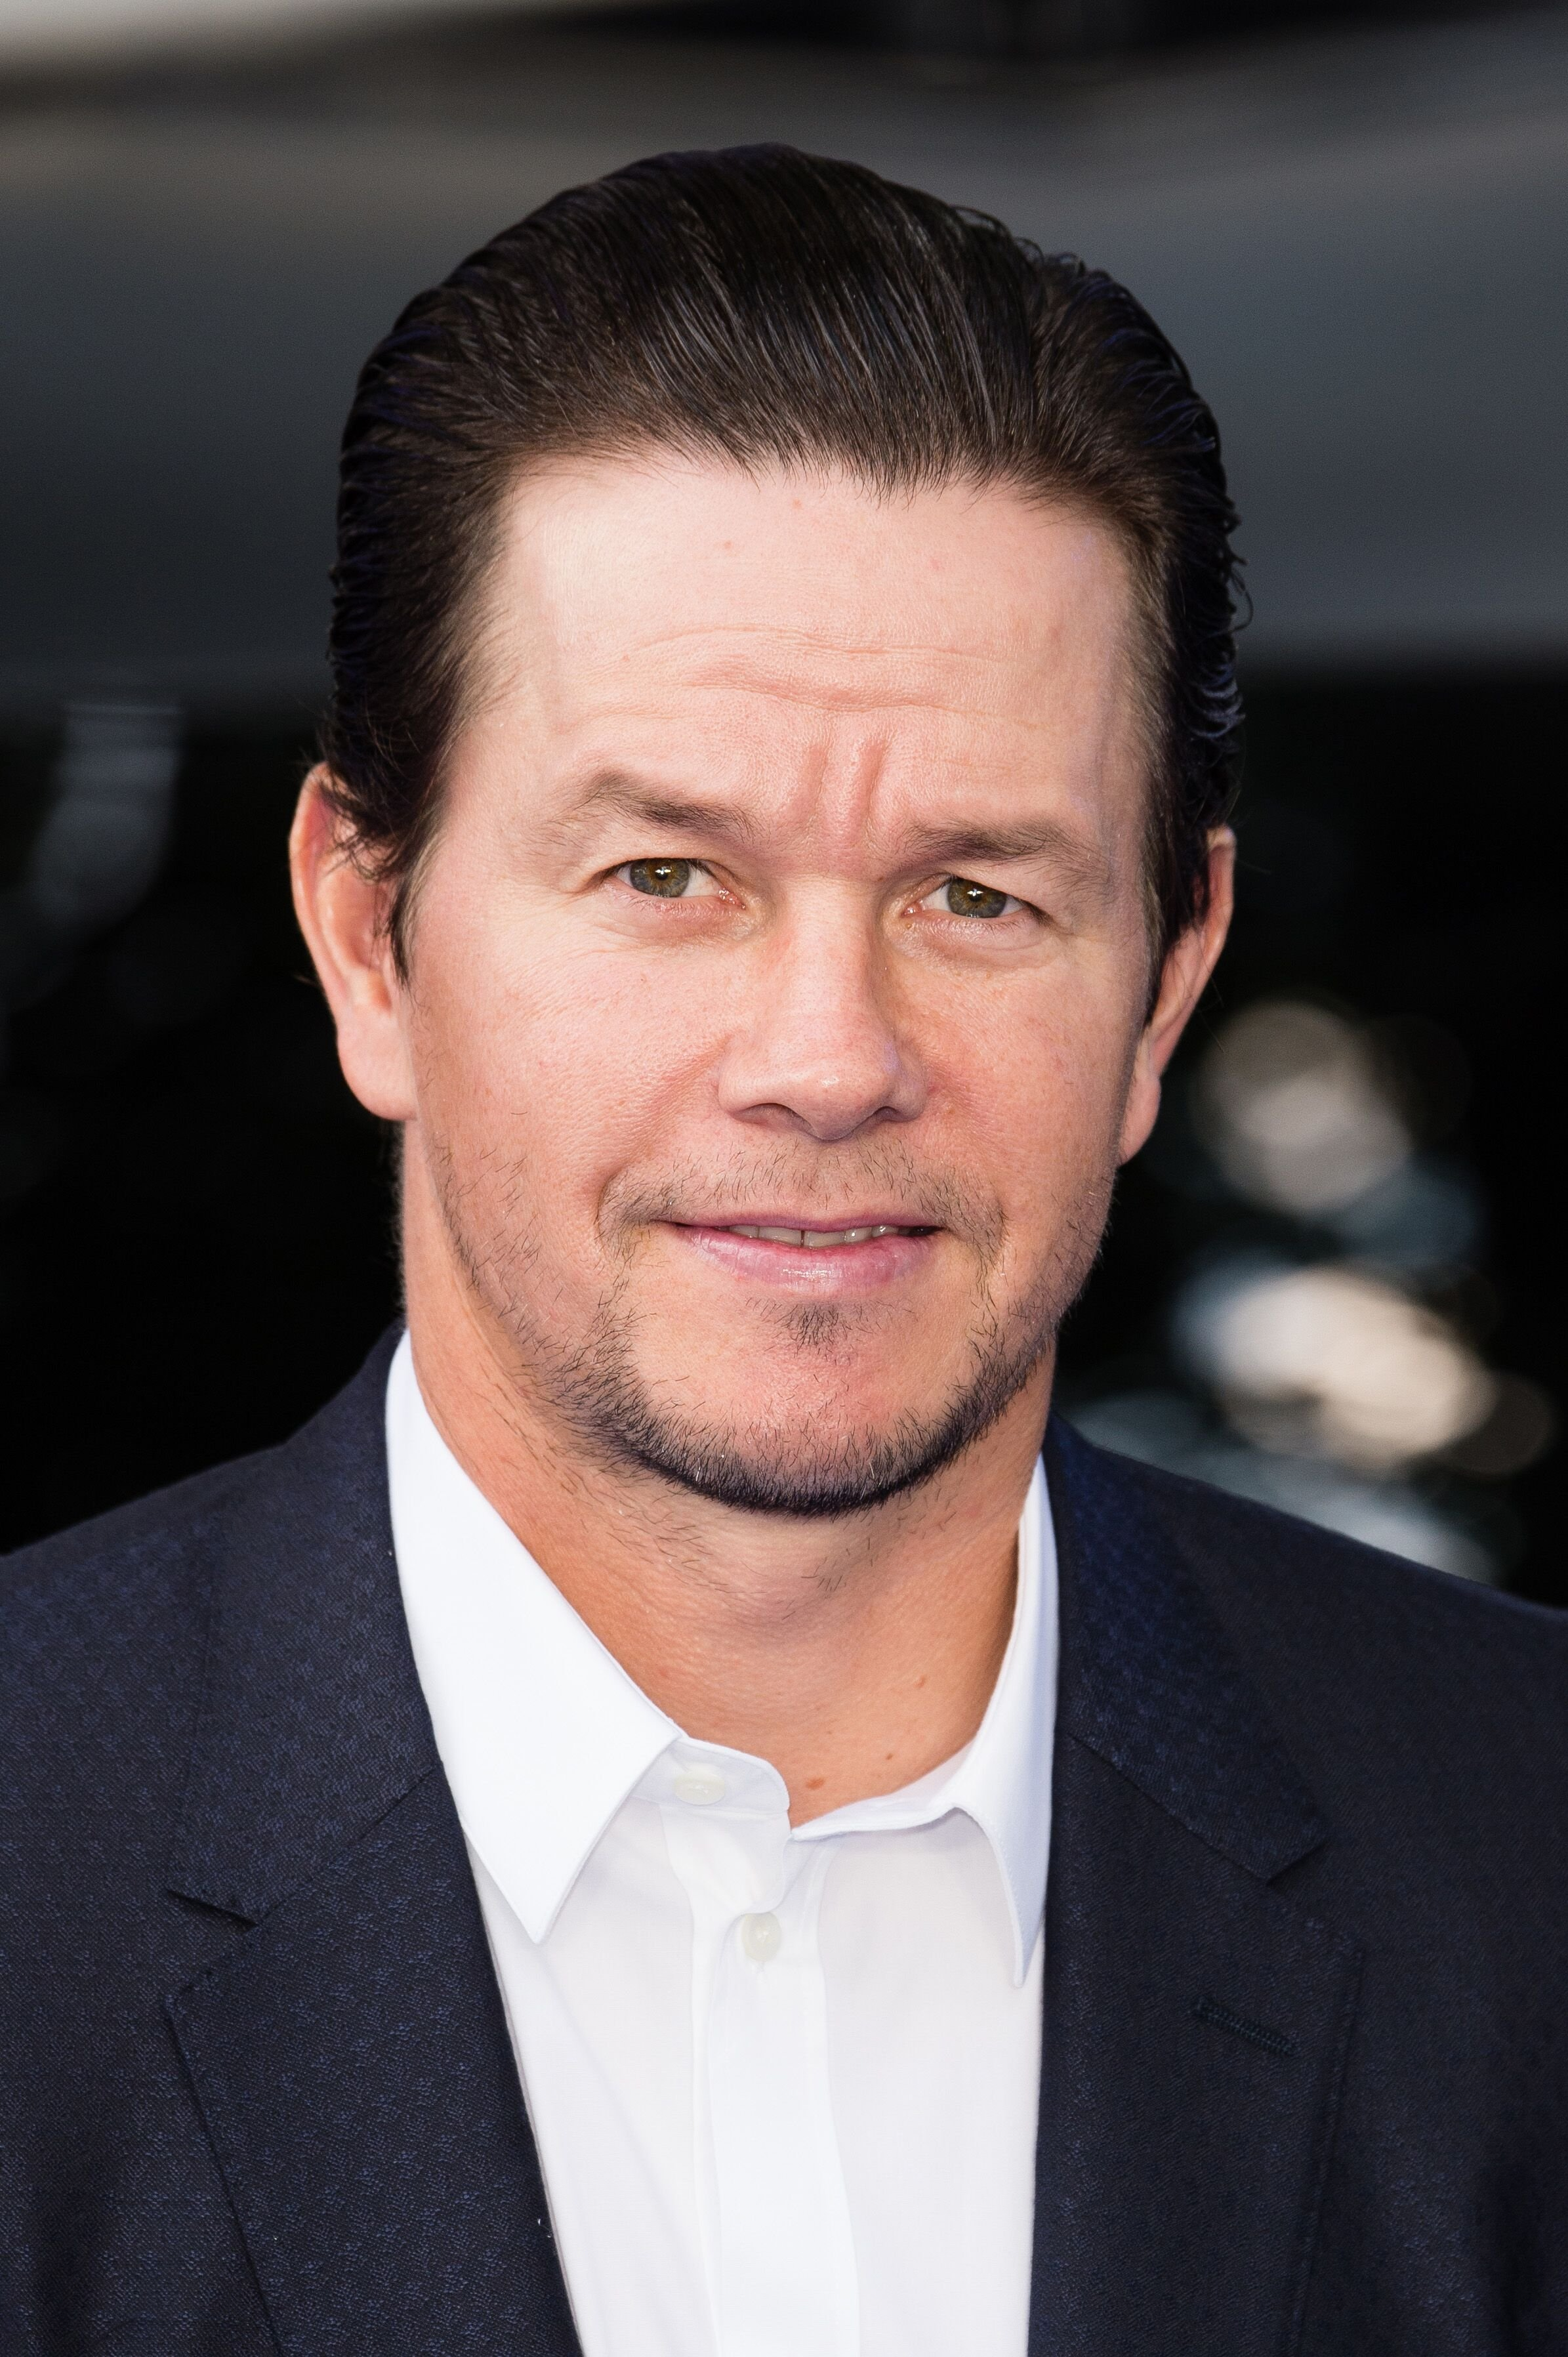 """Mark Wahlberg attends the global premiere of """"Transformers: The Last Knight"""" at Cineworld Leicester Square on June 18, 2017 in London, England 